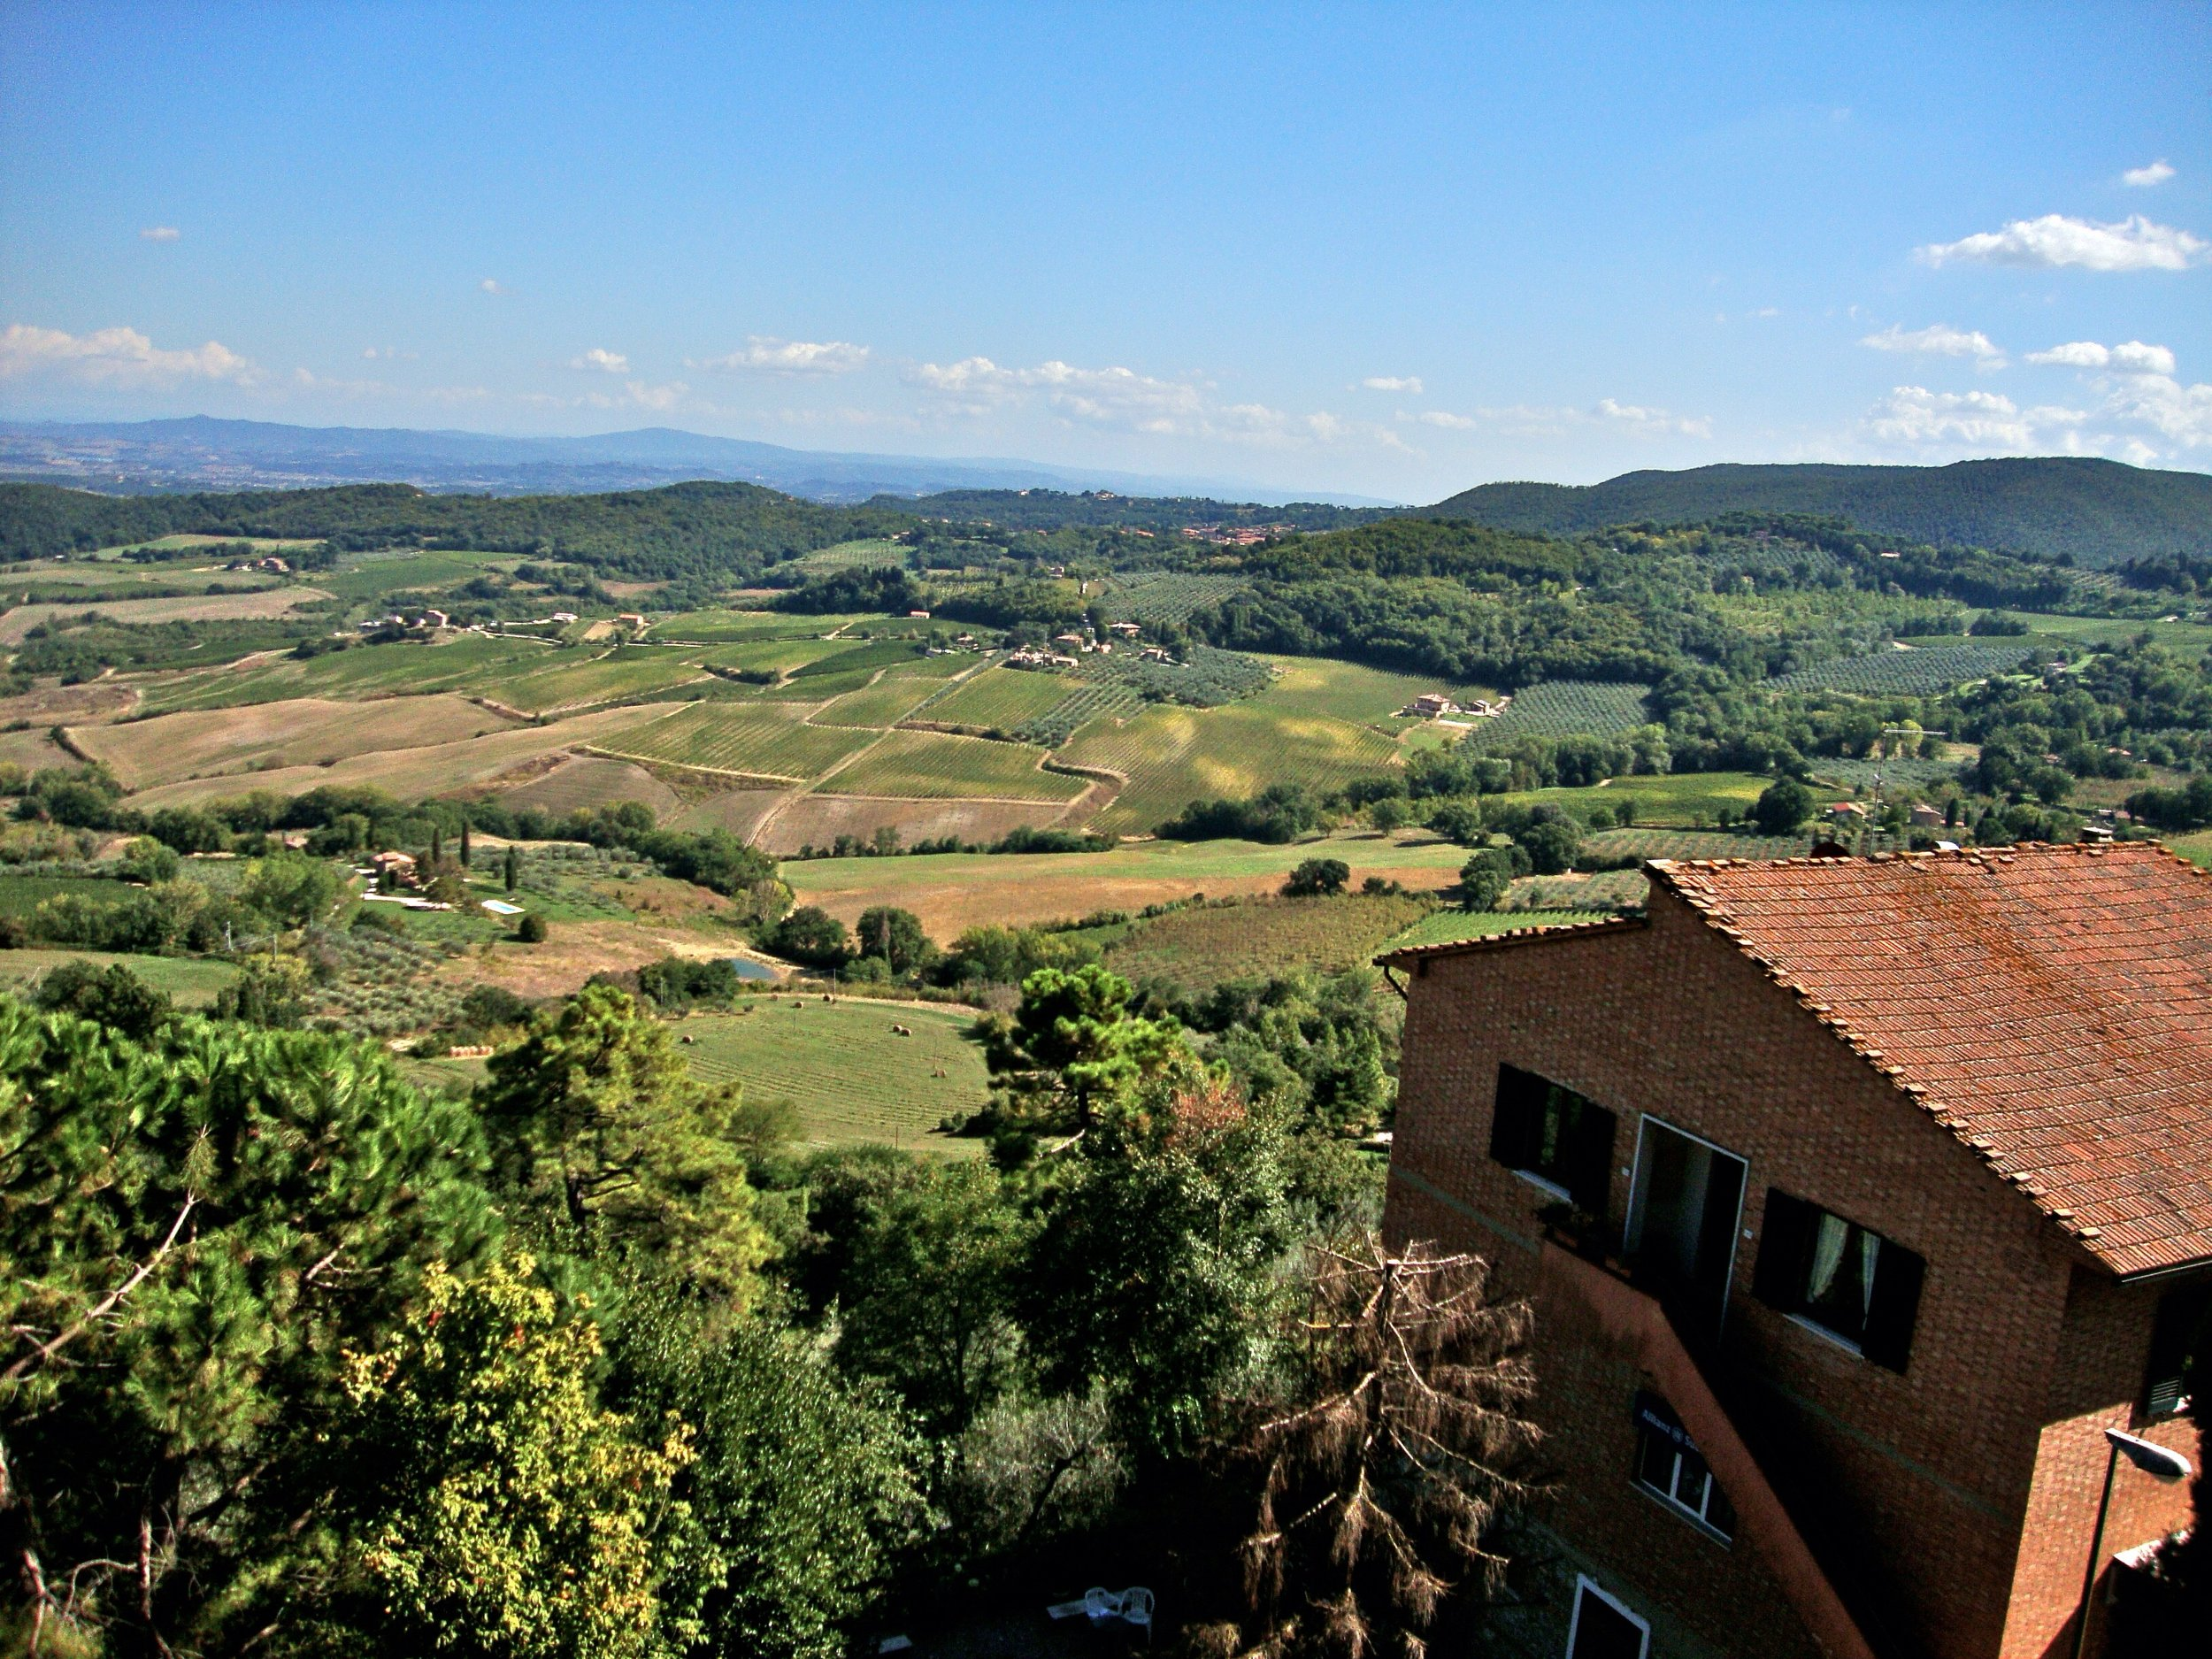 Montepulciano, Italy (Wine country, one of our favorite places while in Italy)